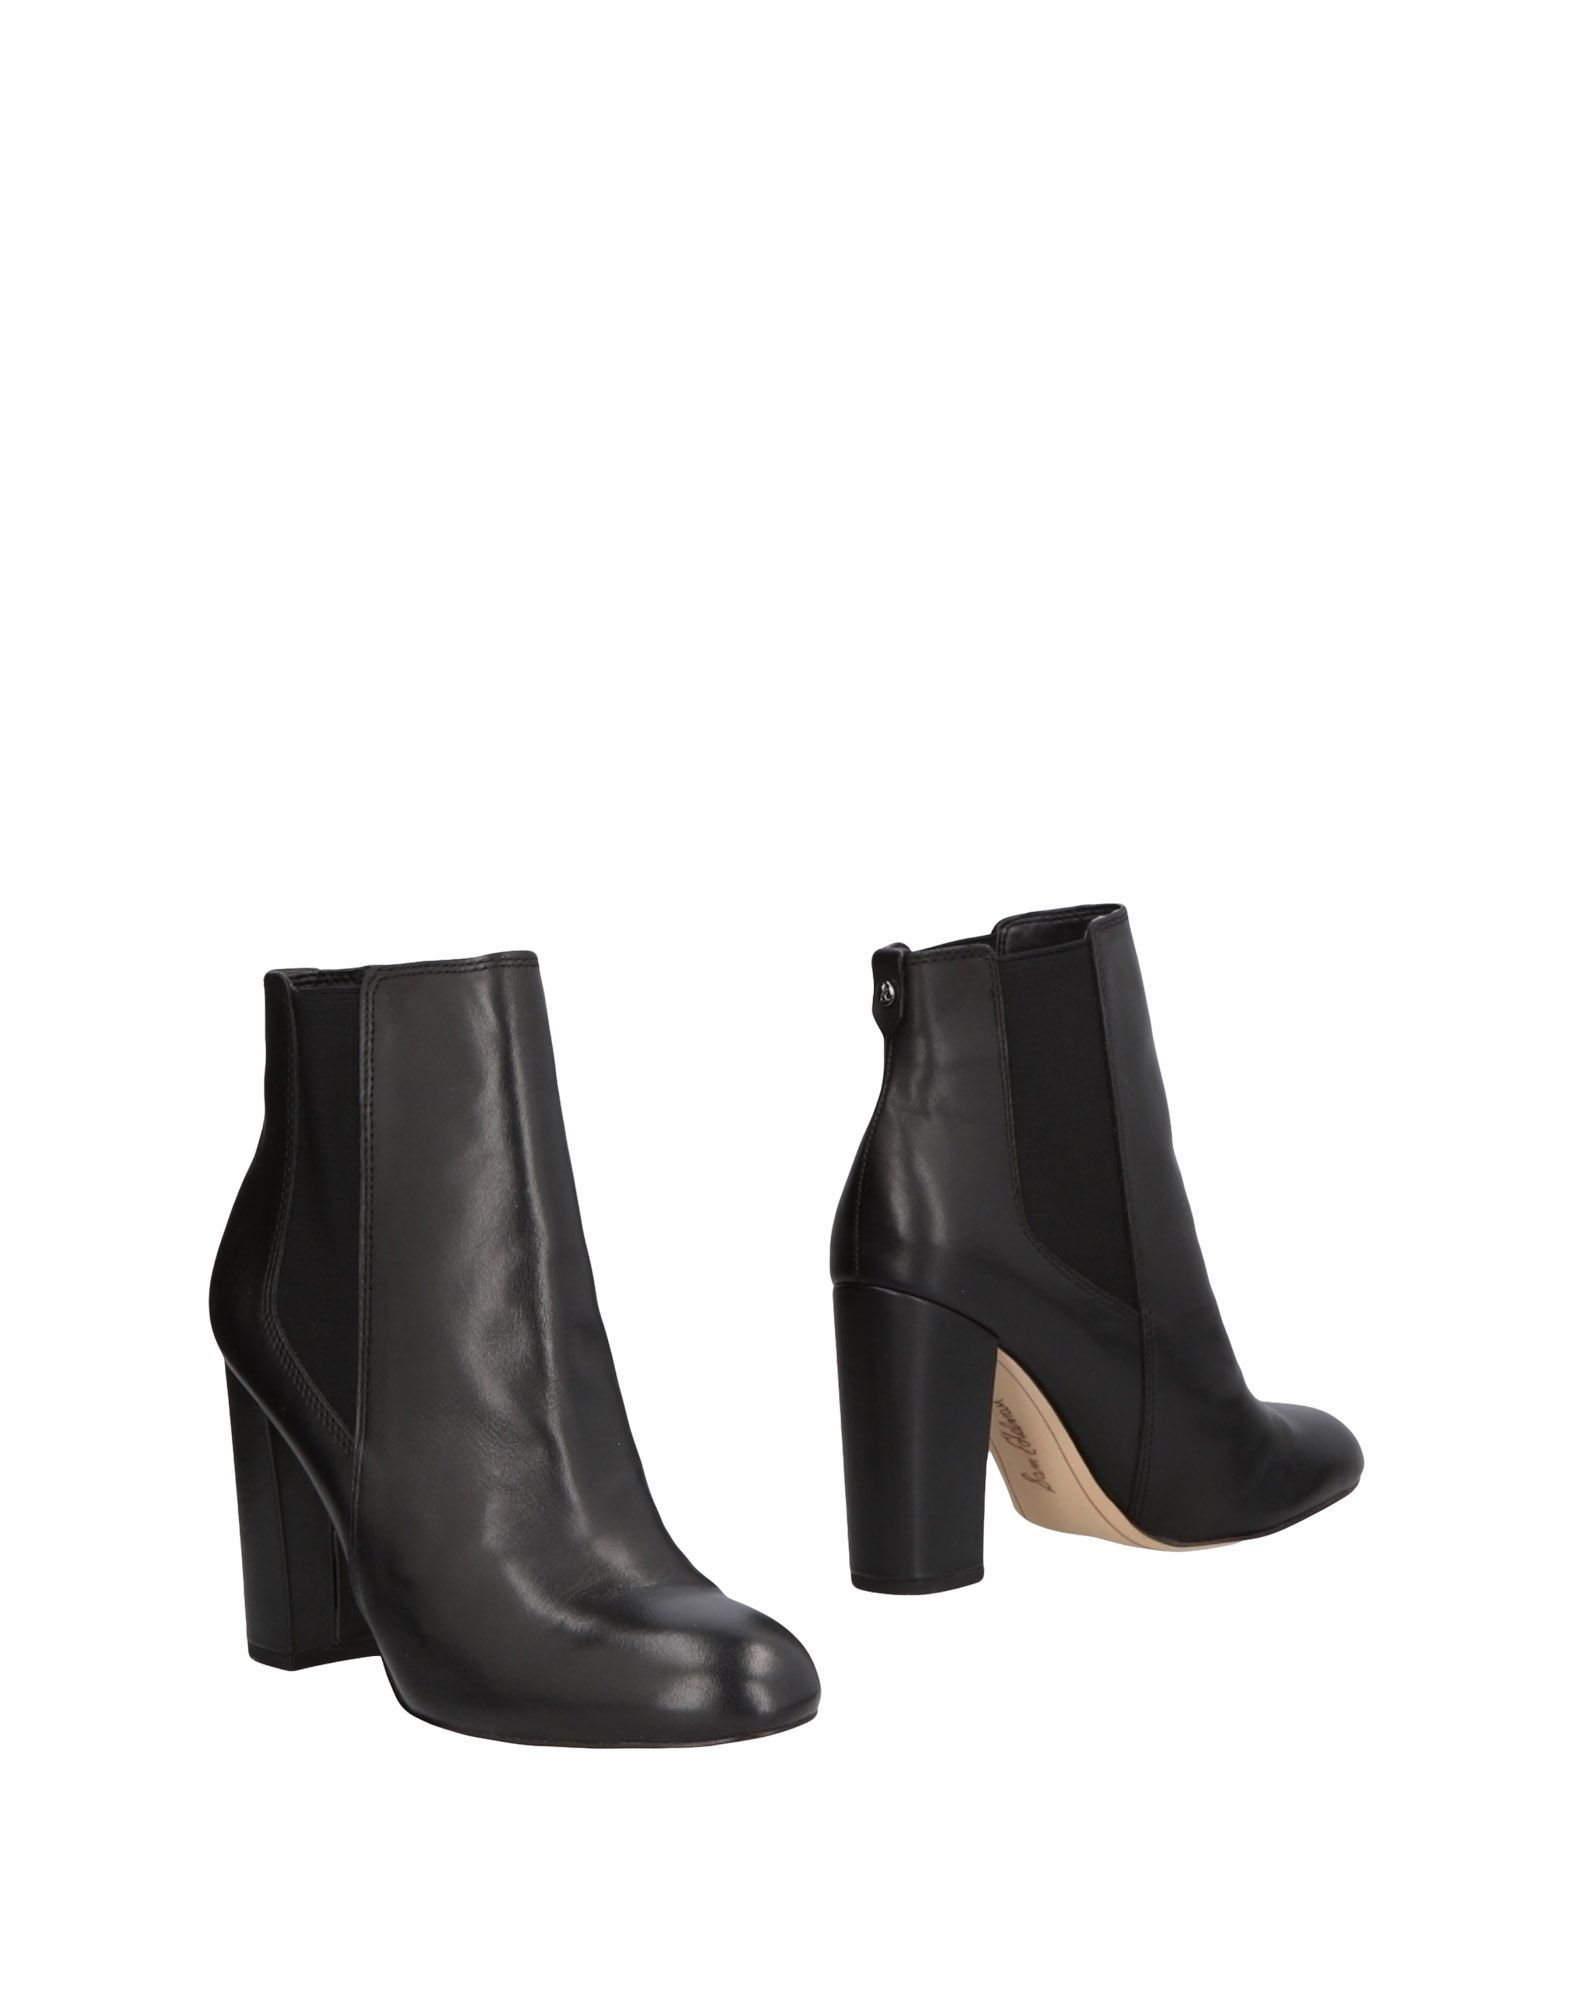 Sam Edelman Black Leather Ankle Boots